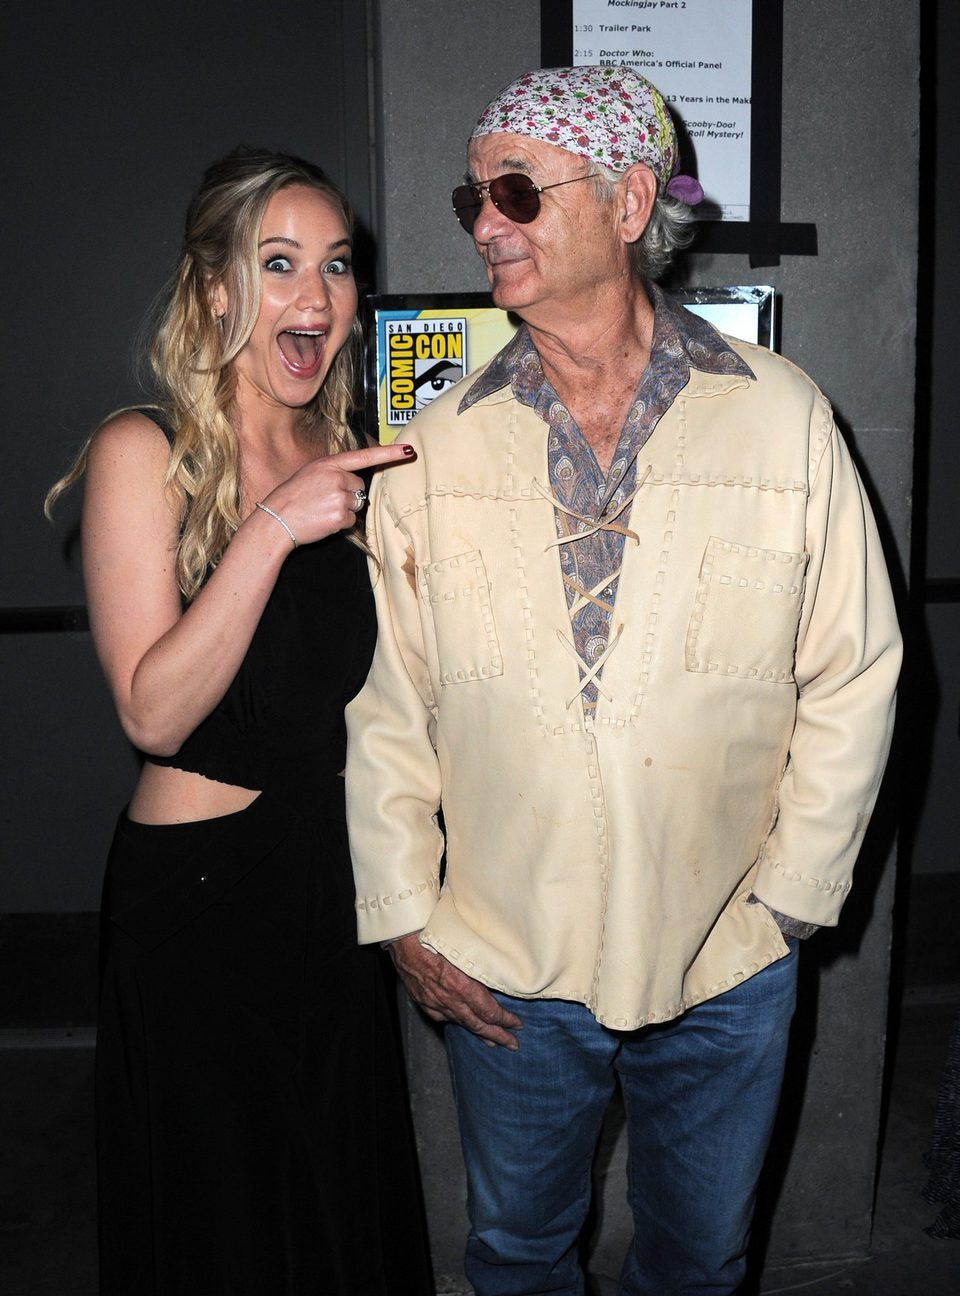 Jennifer Lawrence freaks out when she meets Bill Murray at the Comic-Con